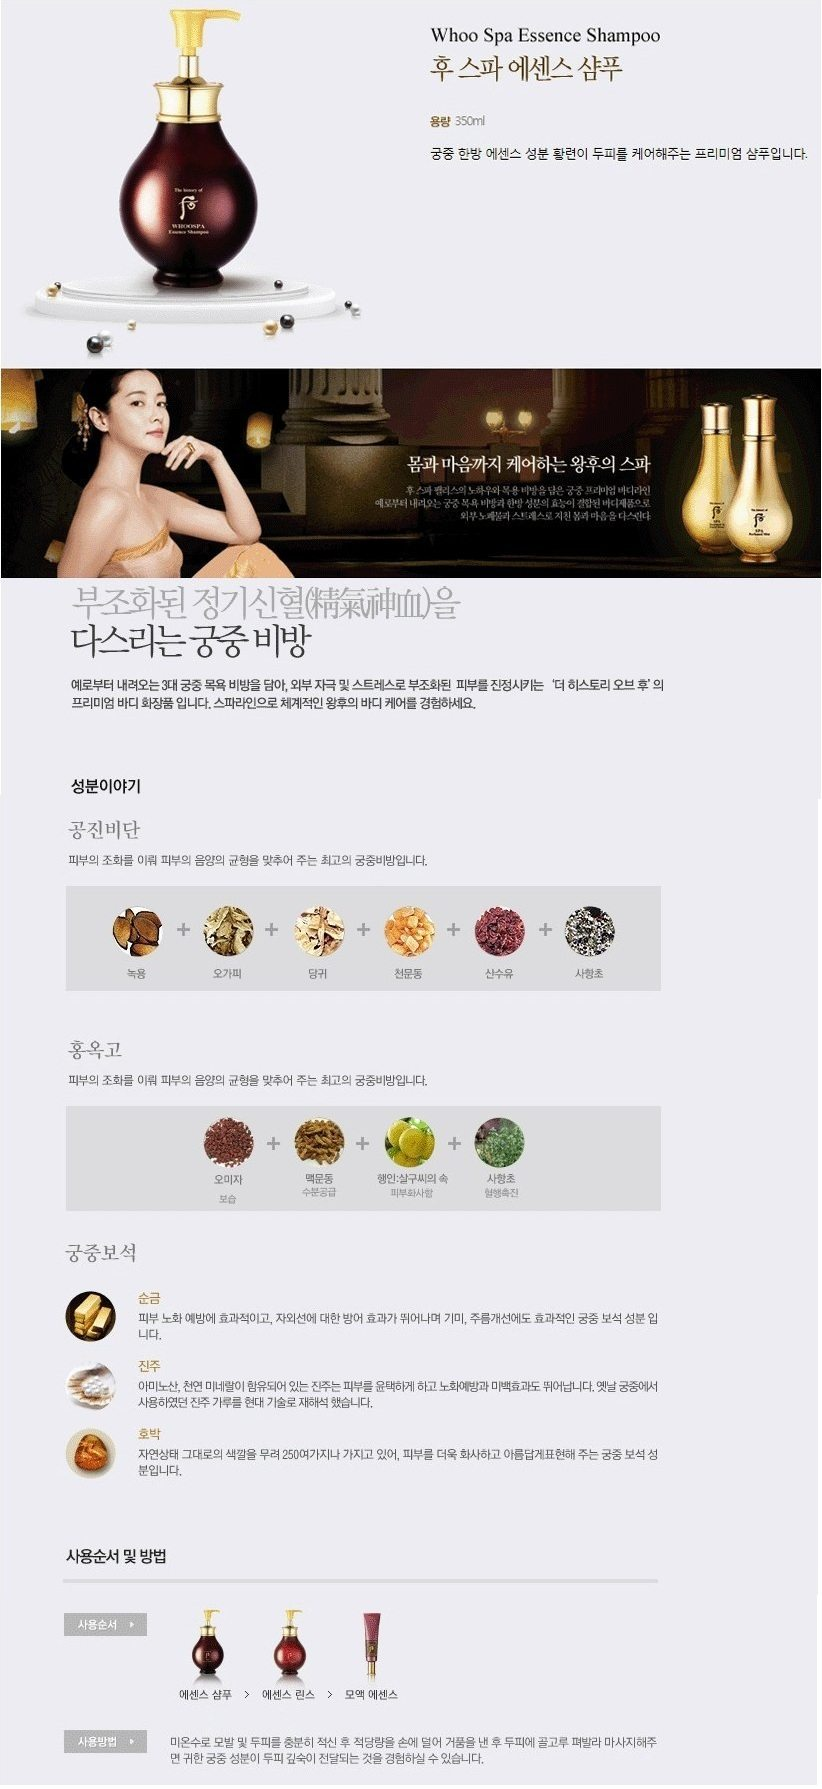 The History Of Whoo WhooSpa Essence Shampoo korean cosmetic skincare body hair product online shop malaysia thailand macau1